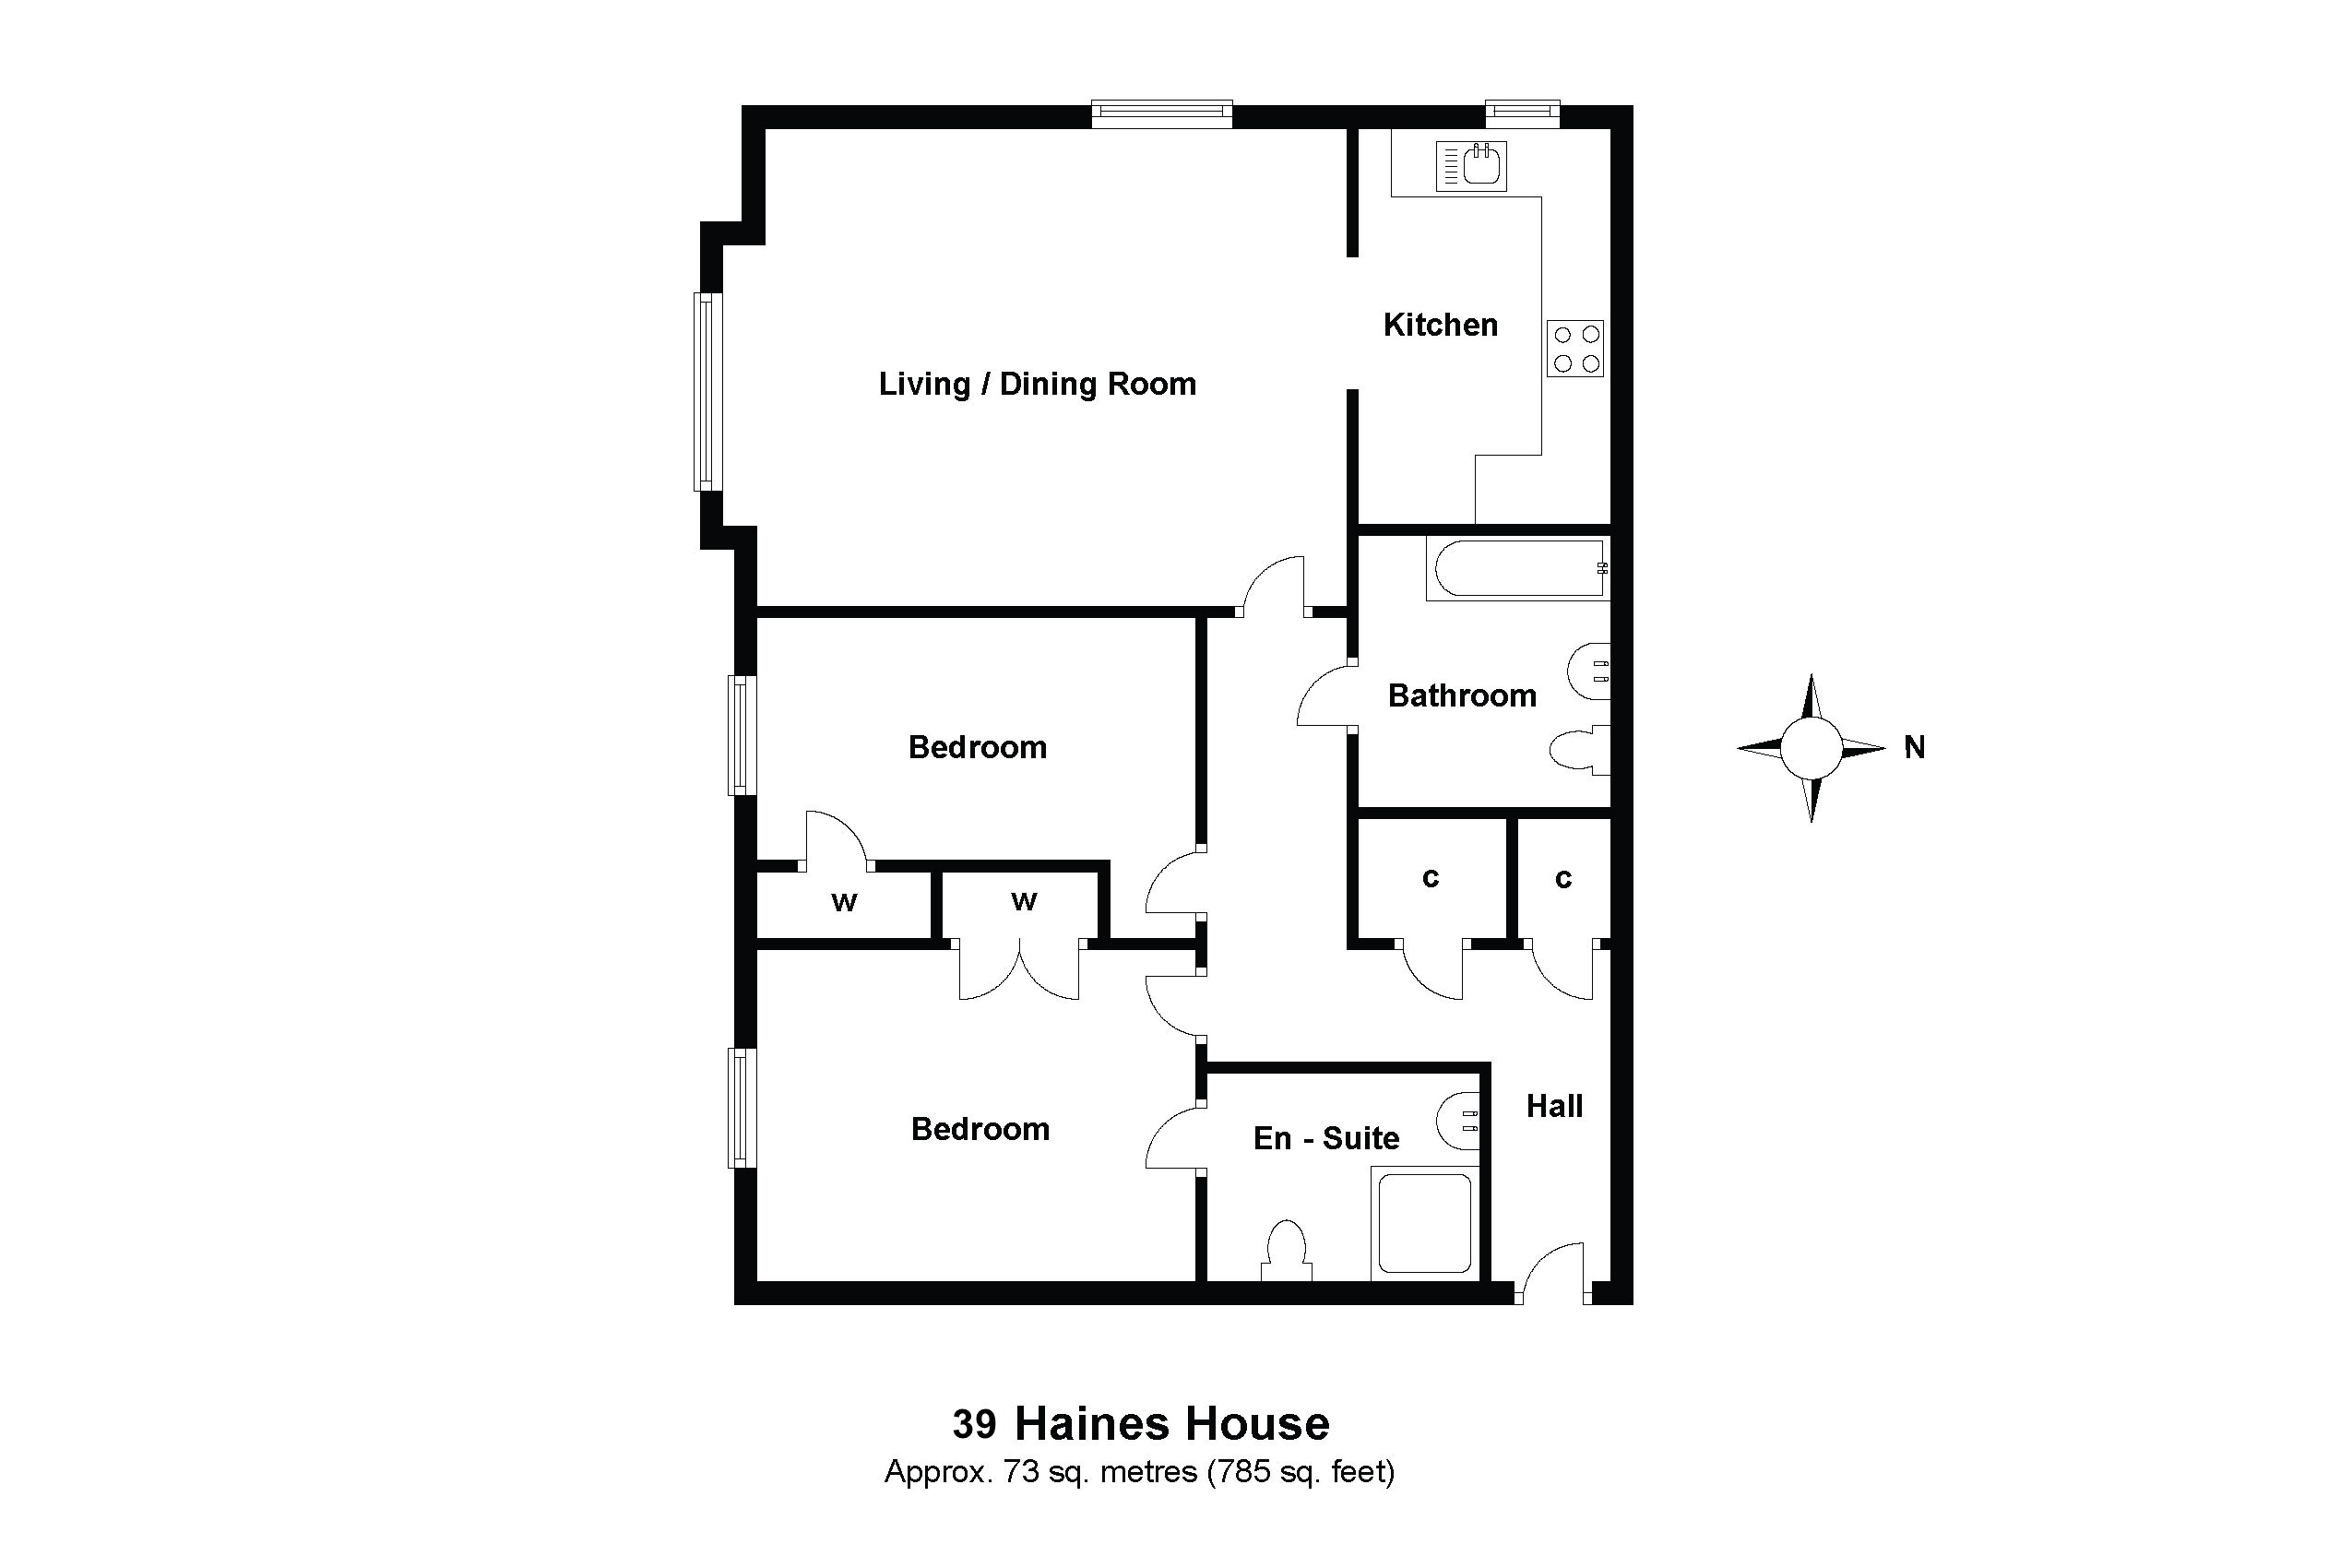 39 Haines House Floorplan